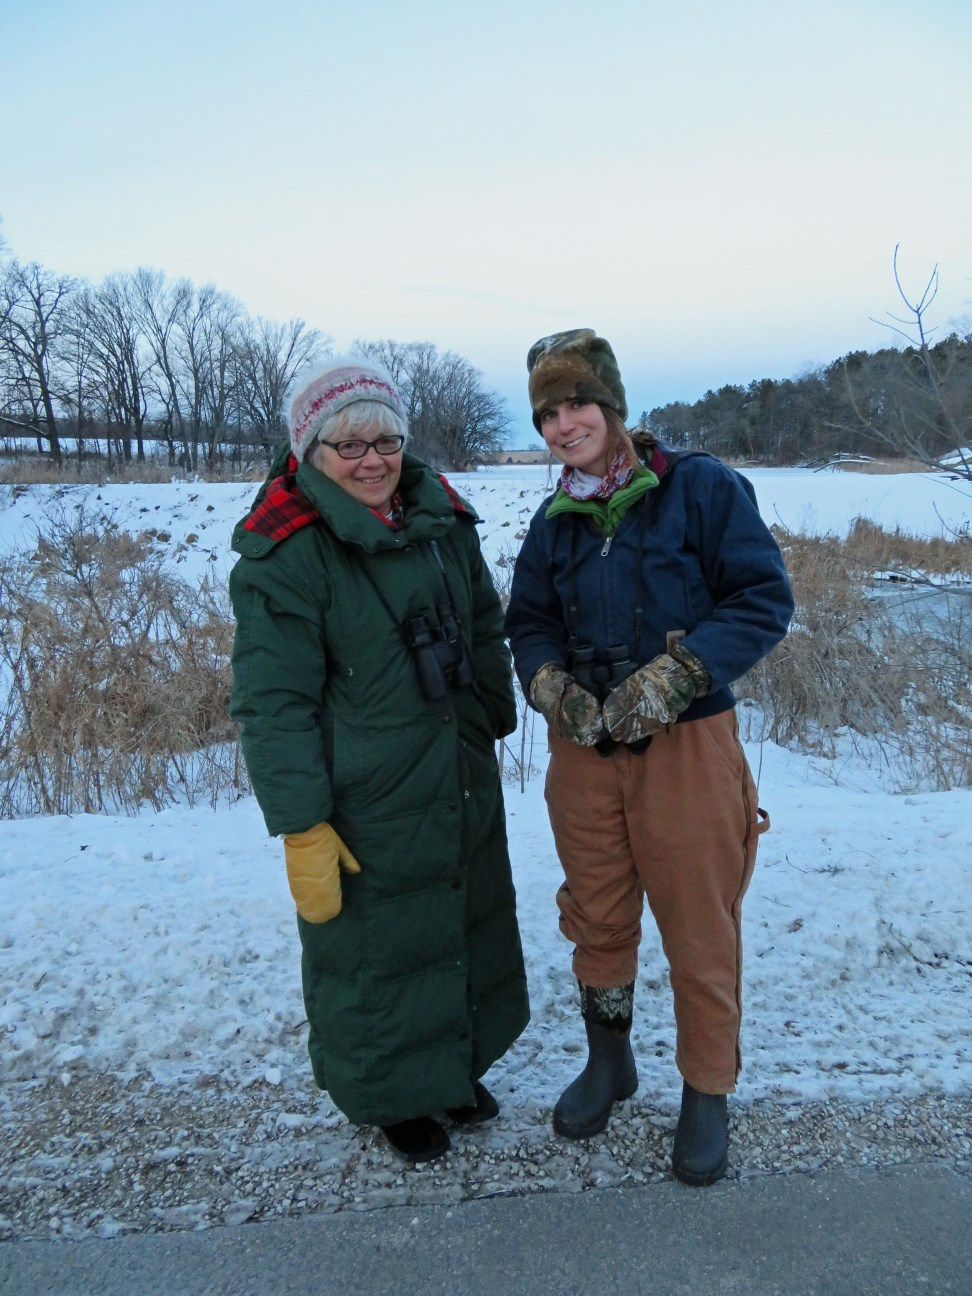 Pardeeville Christmas Bird Counters Jane Considine (left) and Maddie Dumas (right) bundle up during their 2016 count.